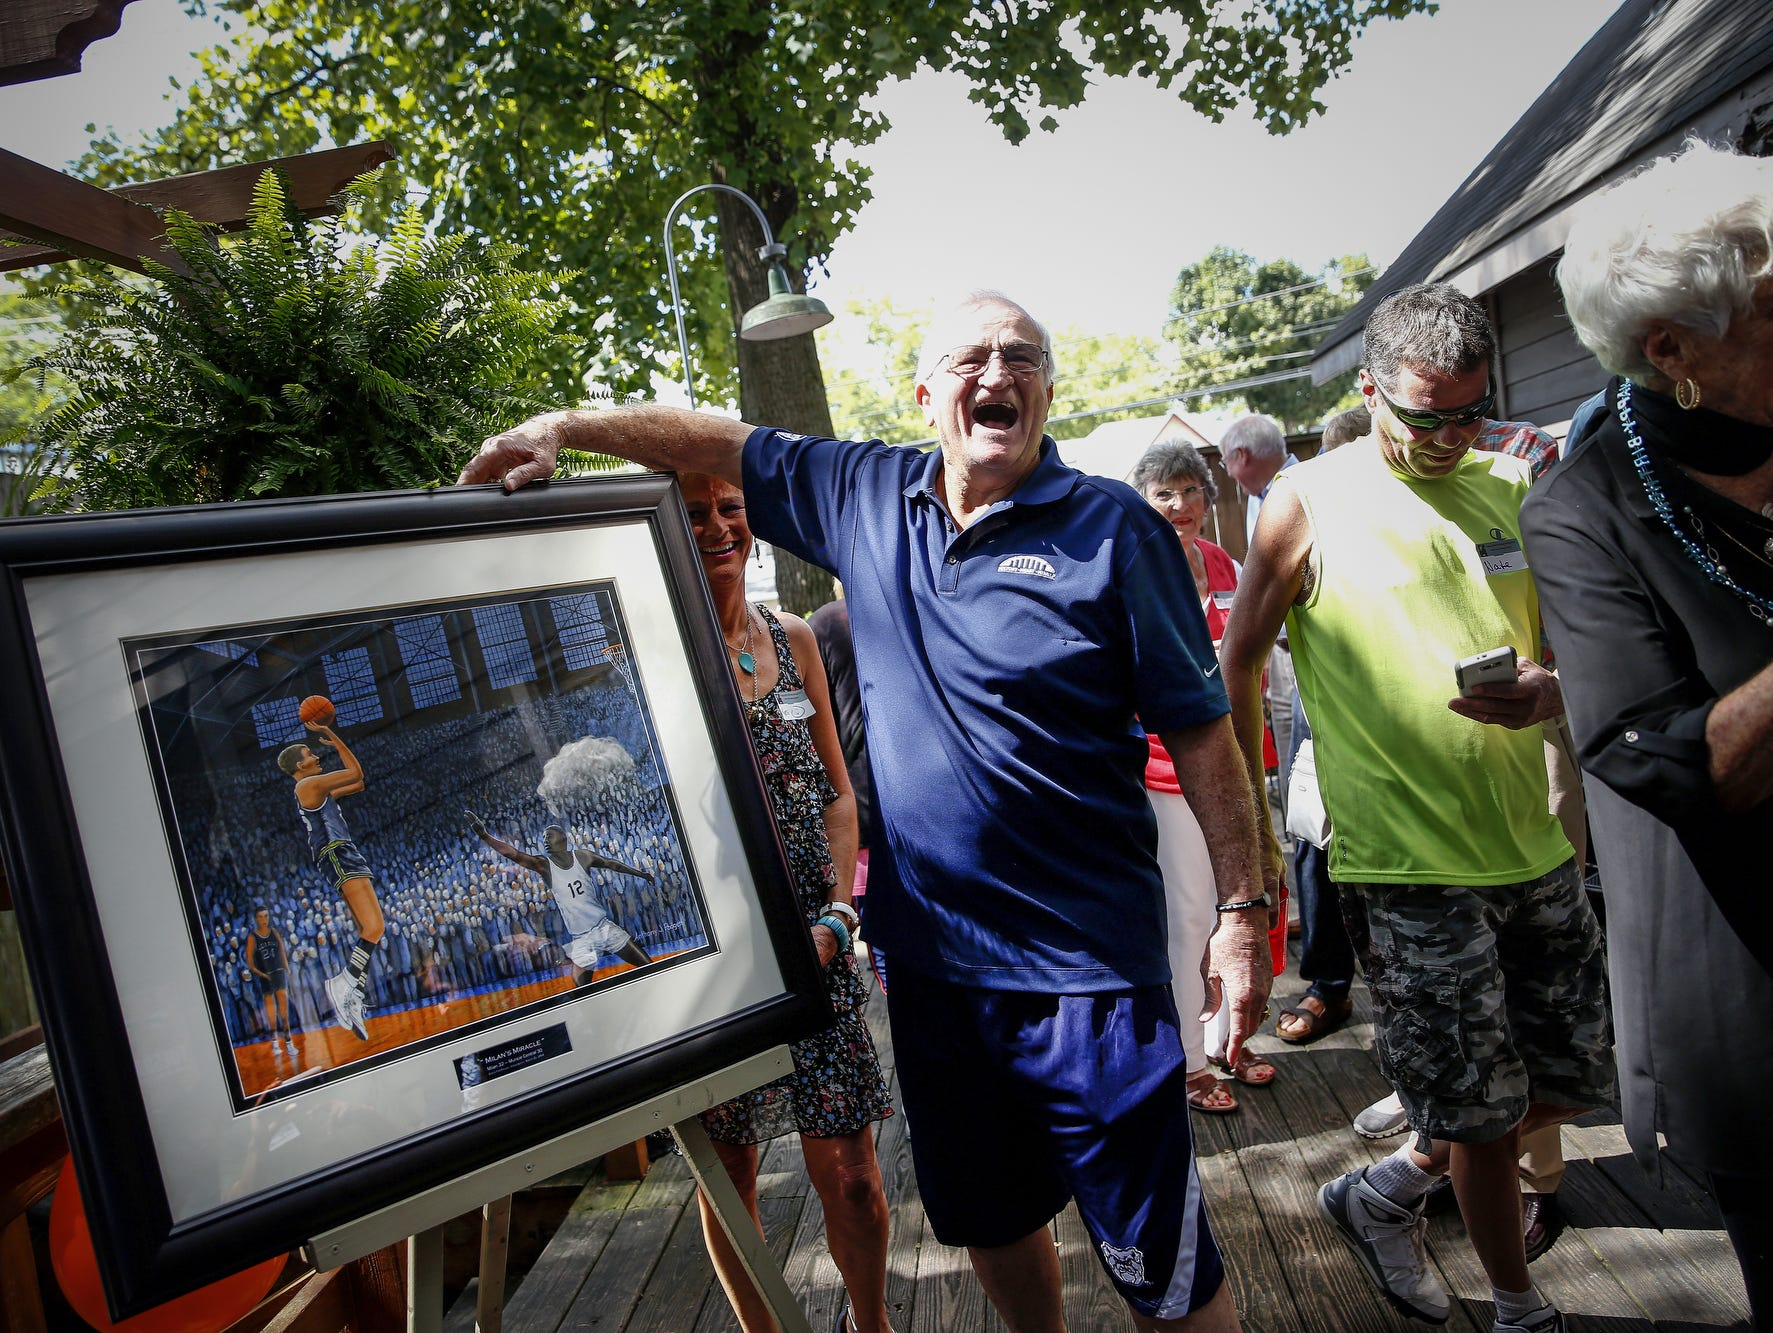 Bobby Plump shows his excitement after a commissioned painting by Anthony Padgett was unveiled during Plump's 80th birthday party Sunday.